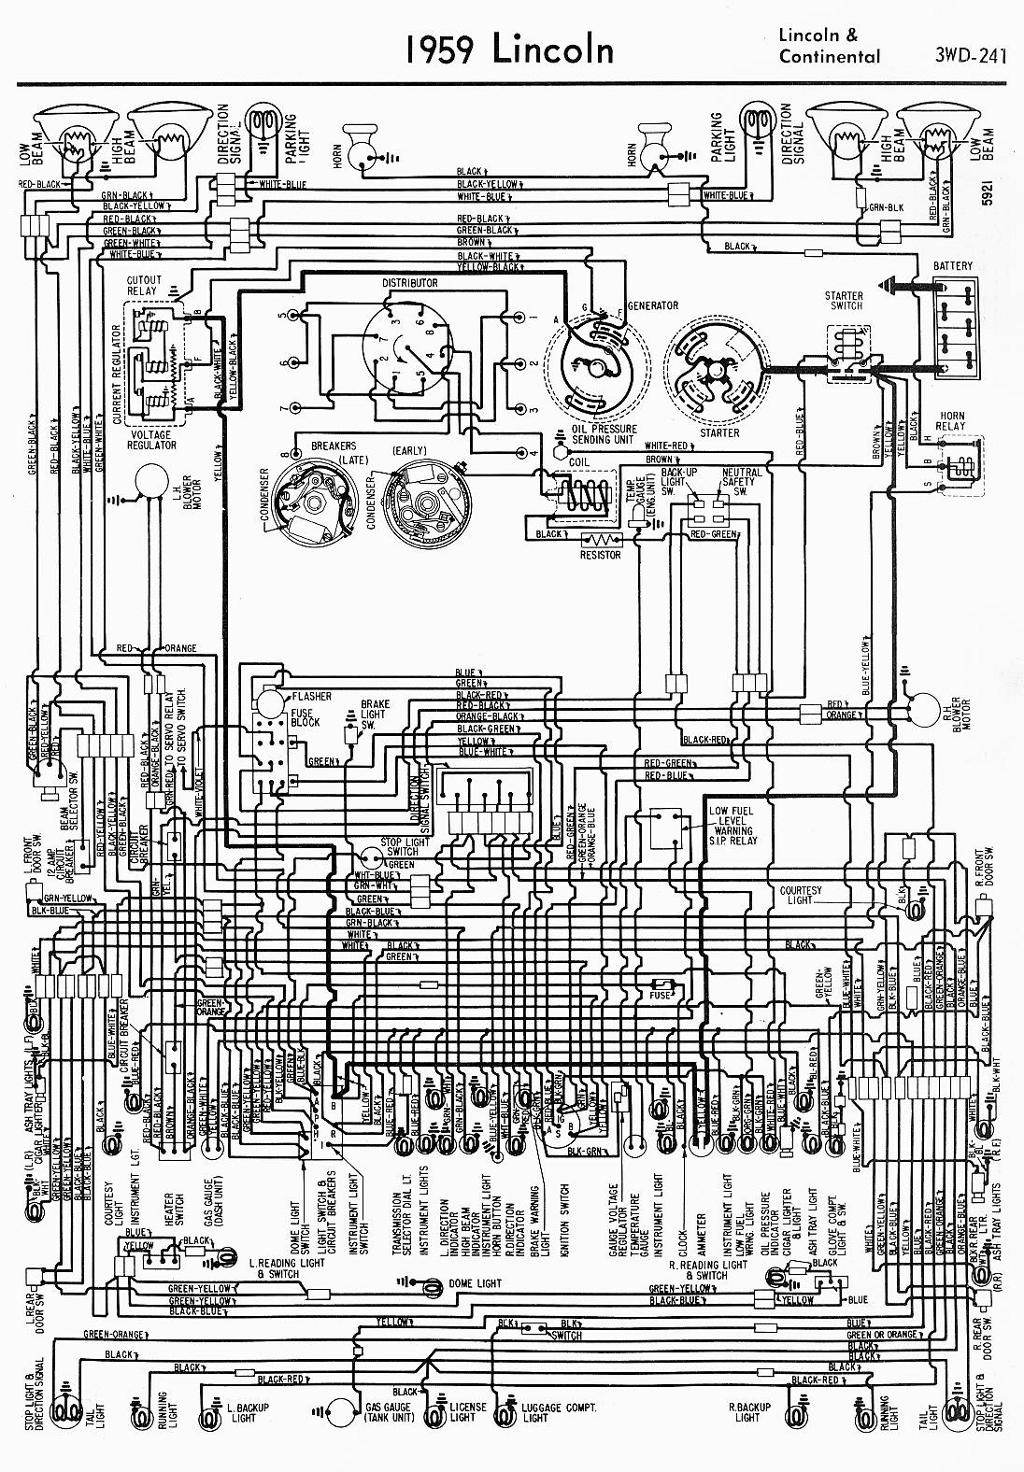 lincoln - car manuals, wiring diagrams pdf & fault codes 98 lincoln continental wiring diagram